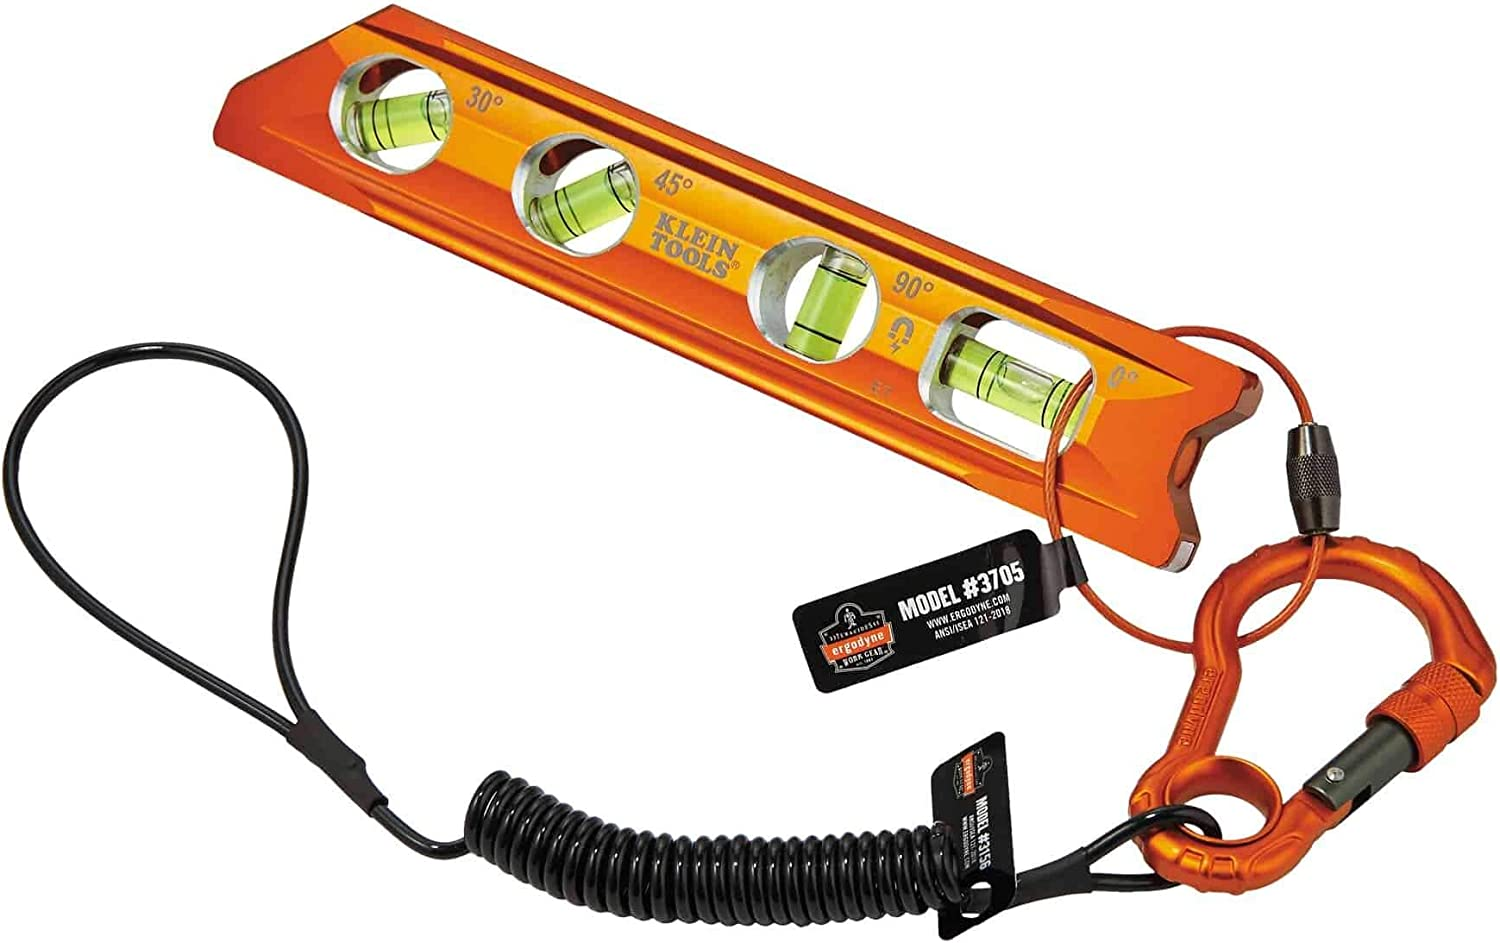 Ergodyne Squids 3186 Includes Tool Lanyards and Attachments for Spud Wrenches to Sleever Bars Tool Tethering Kit for Iron//Steel Workers